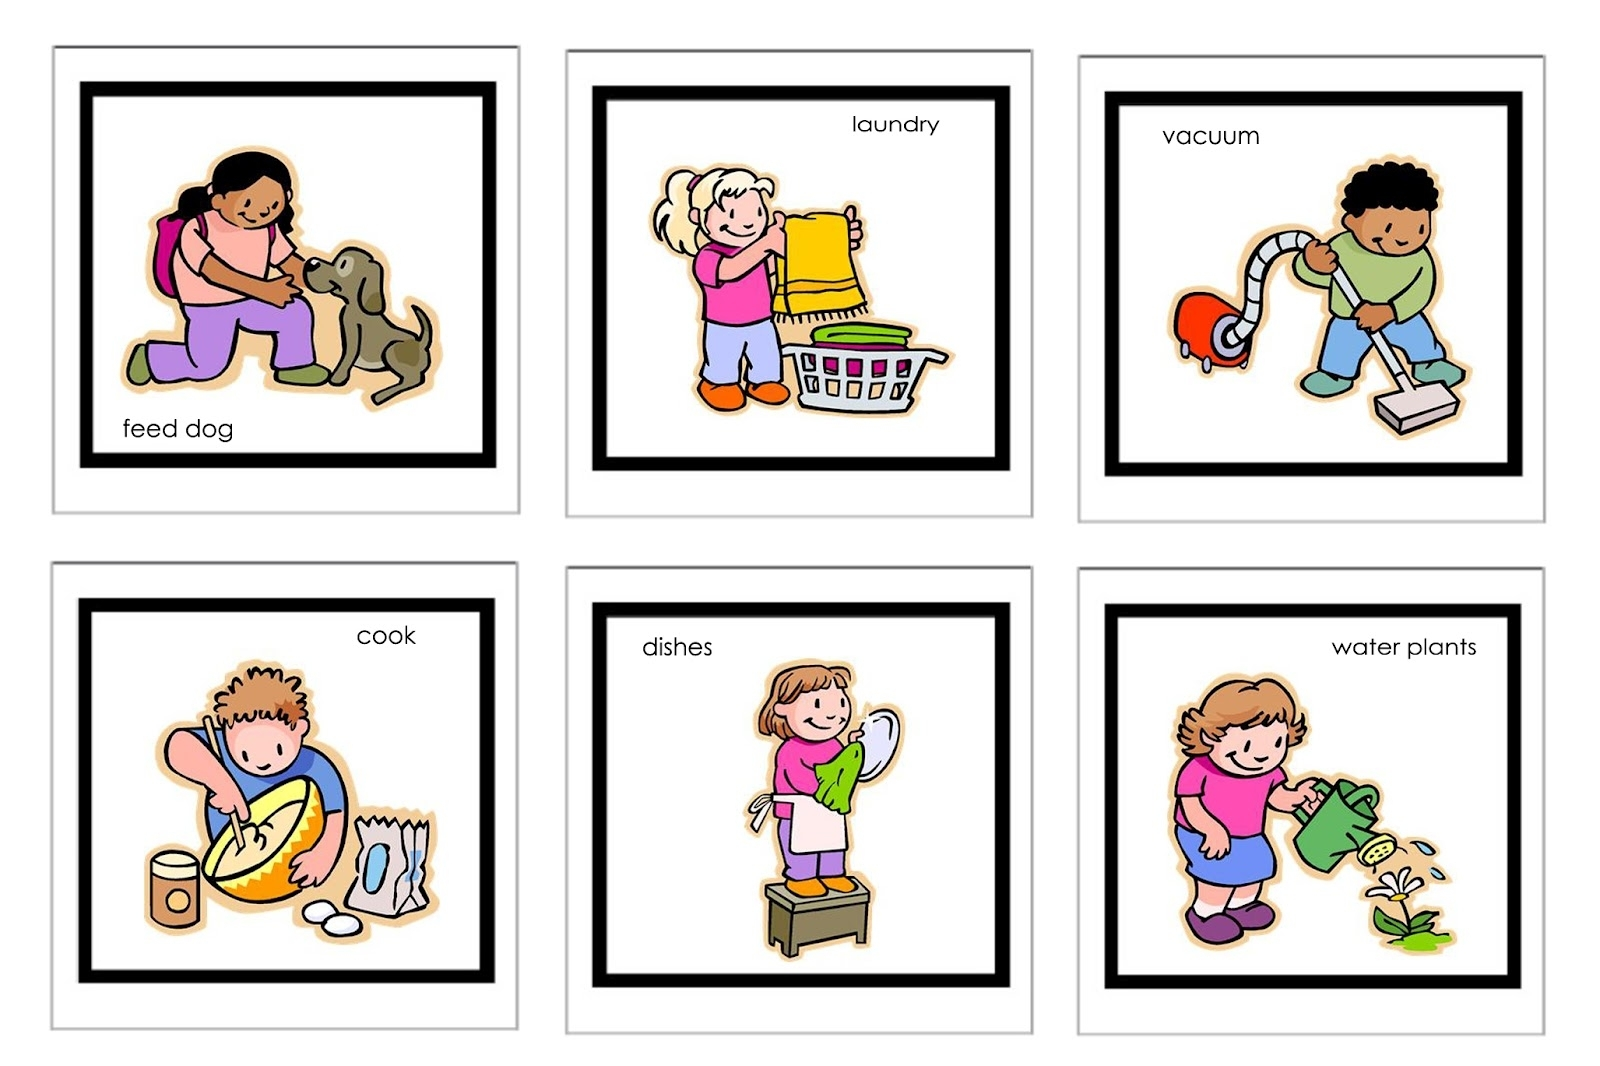 Chore clipart household chore. Best of chores collection